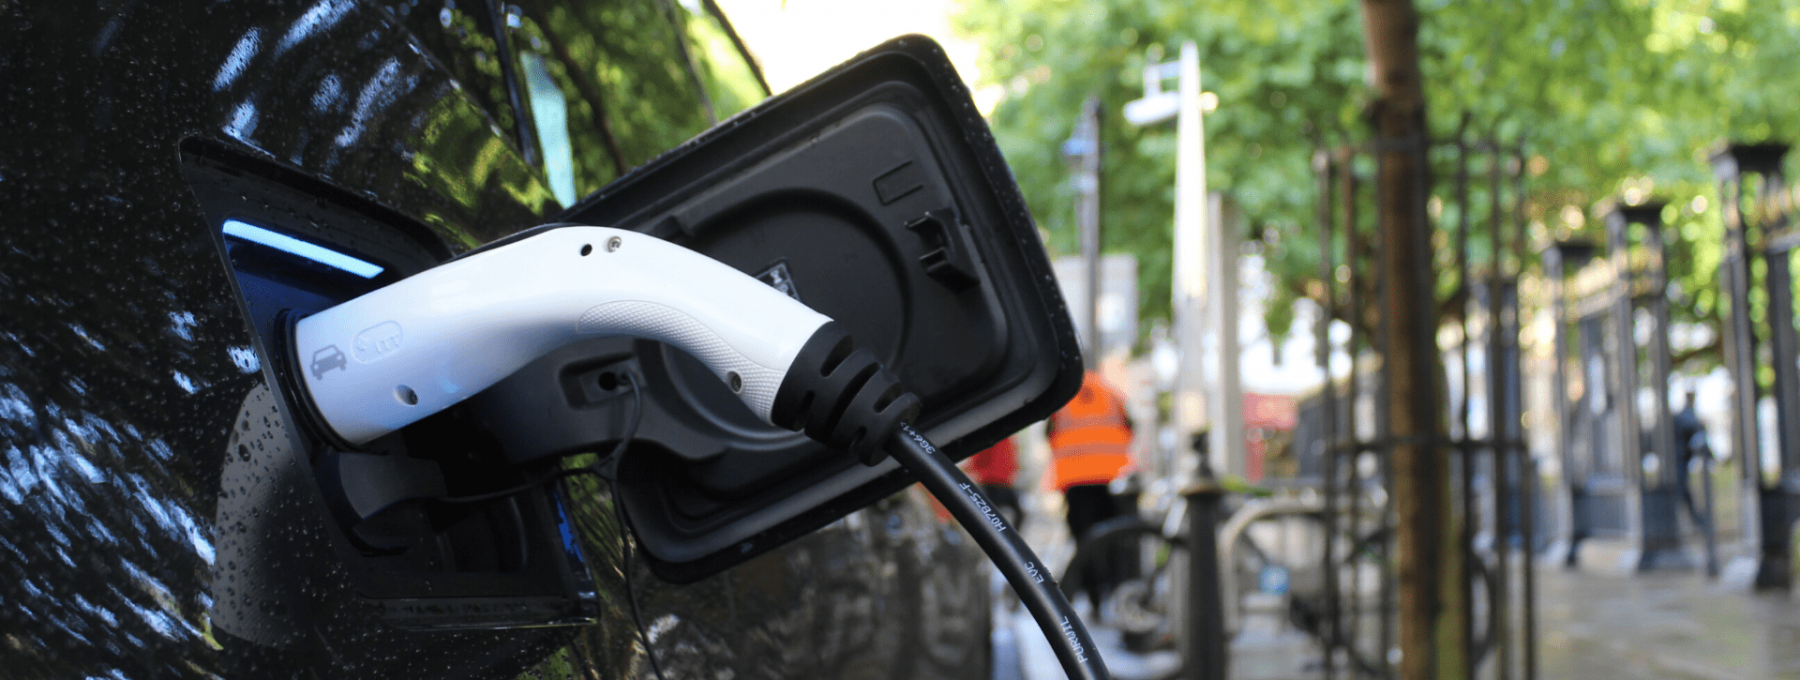 The Beginners Guide to Driving Electric Cars